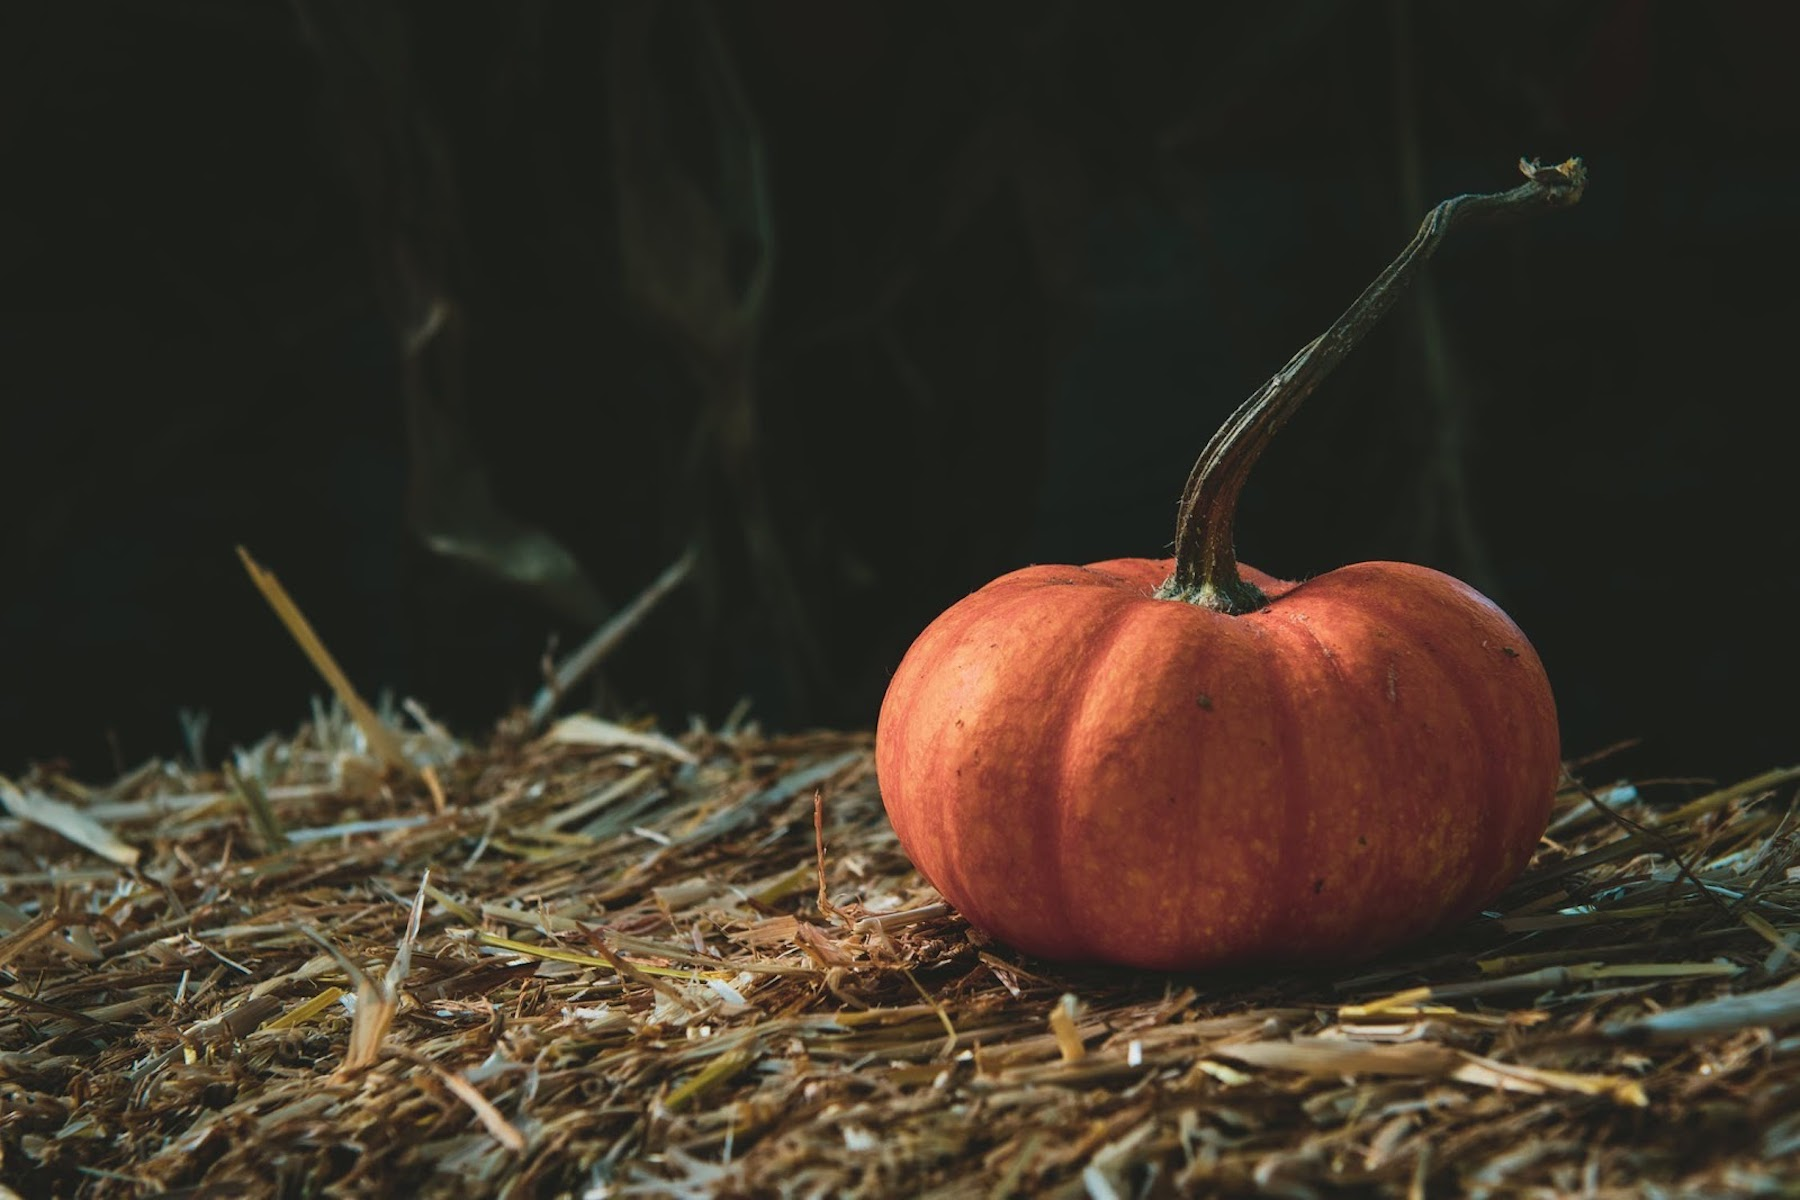 Properties of the pumpkin on the skin